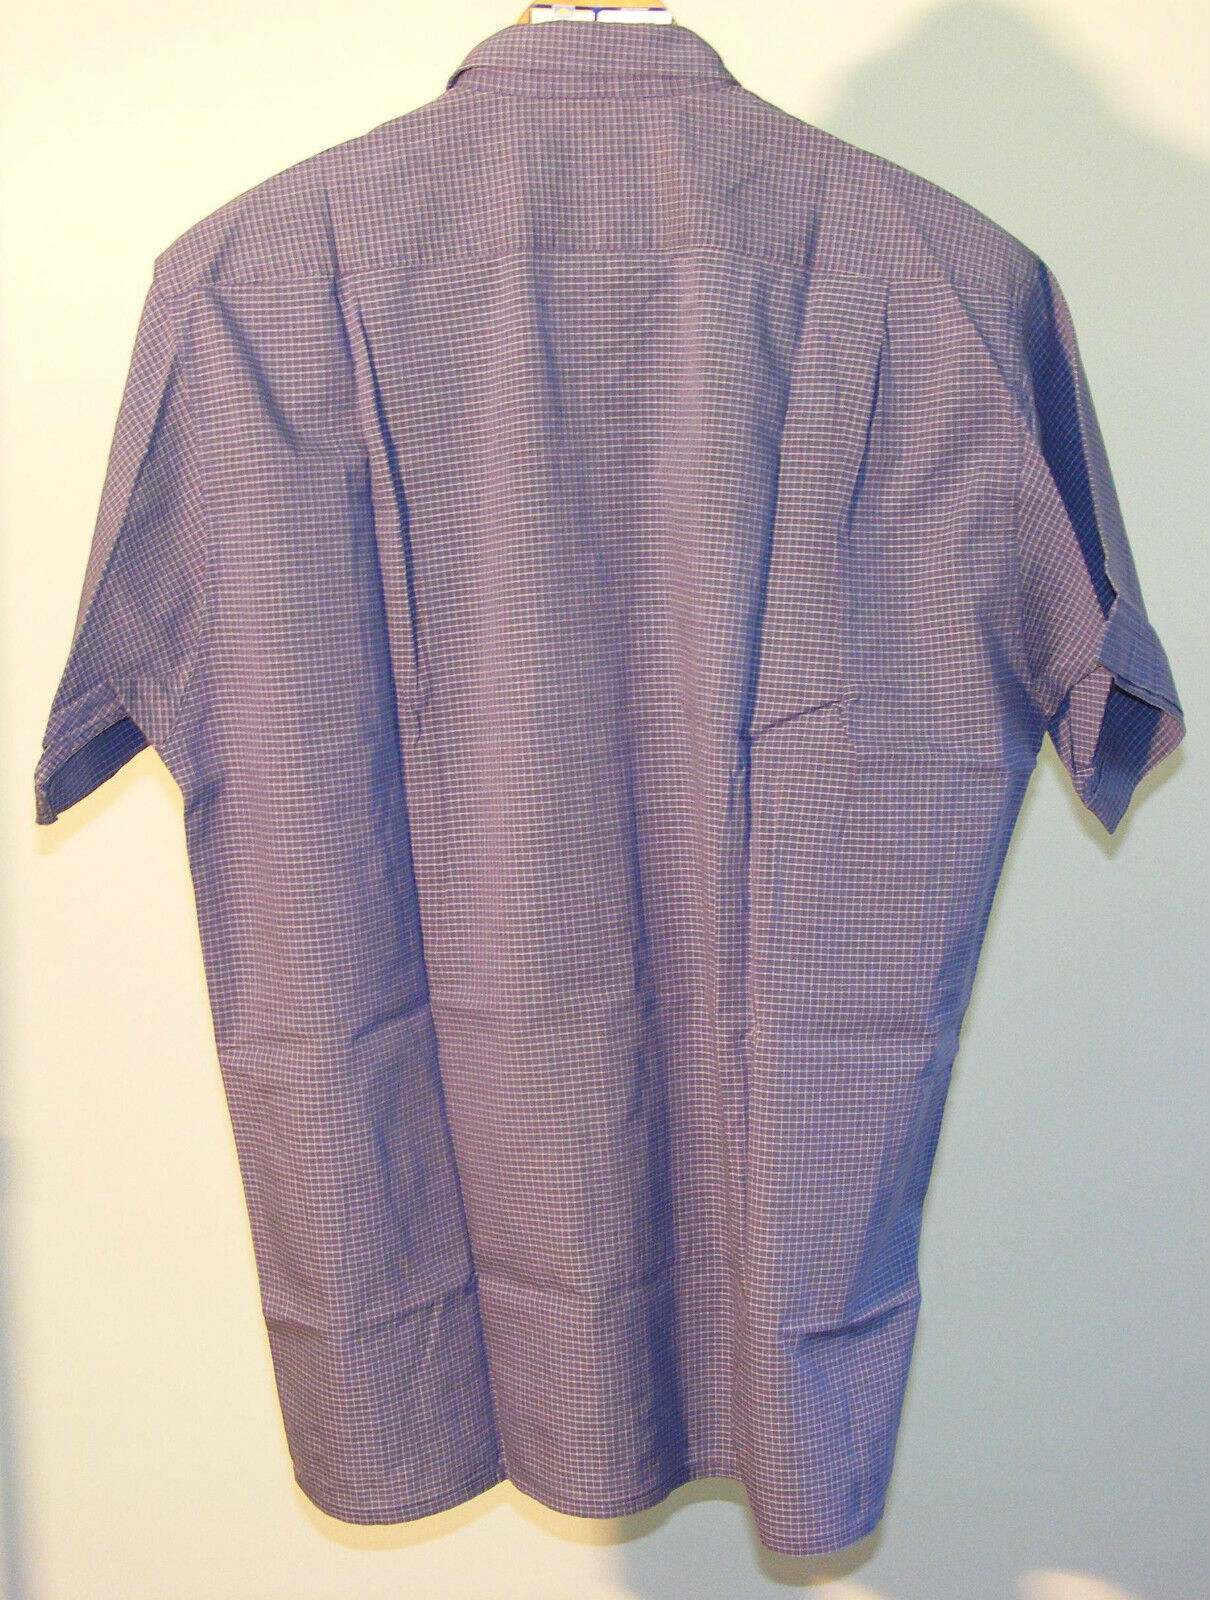 Lord's À Taille 340Ebay Marque Chemise » Homme « Courtes Manches MGpLSUzVq